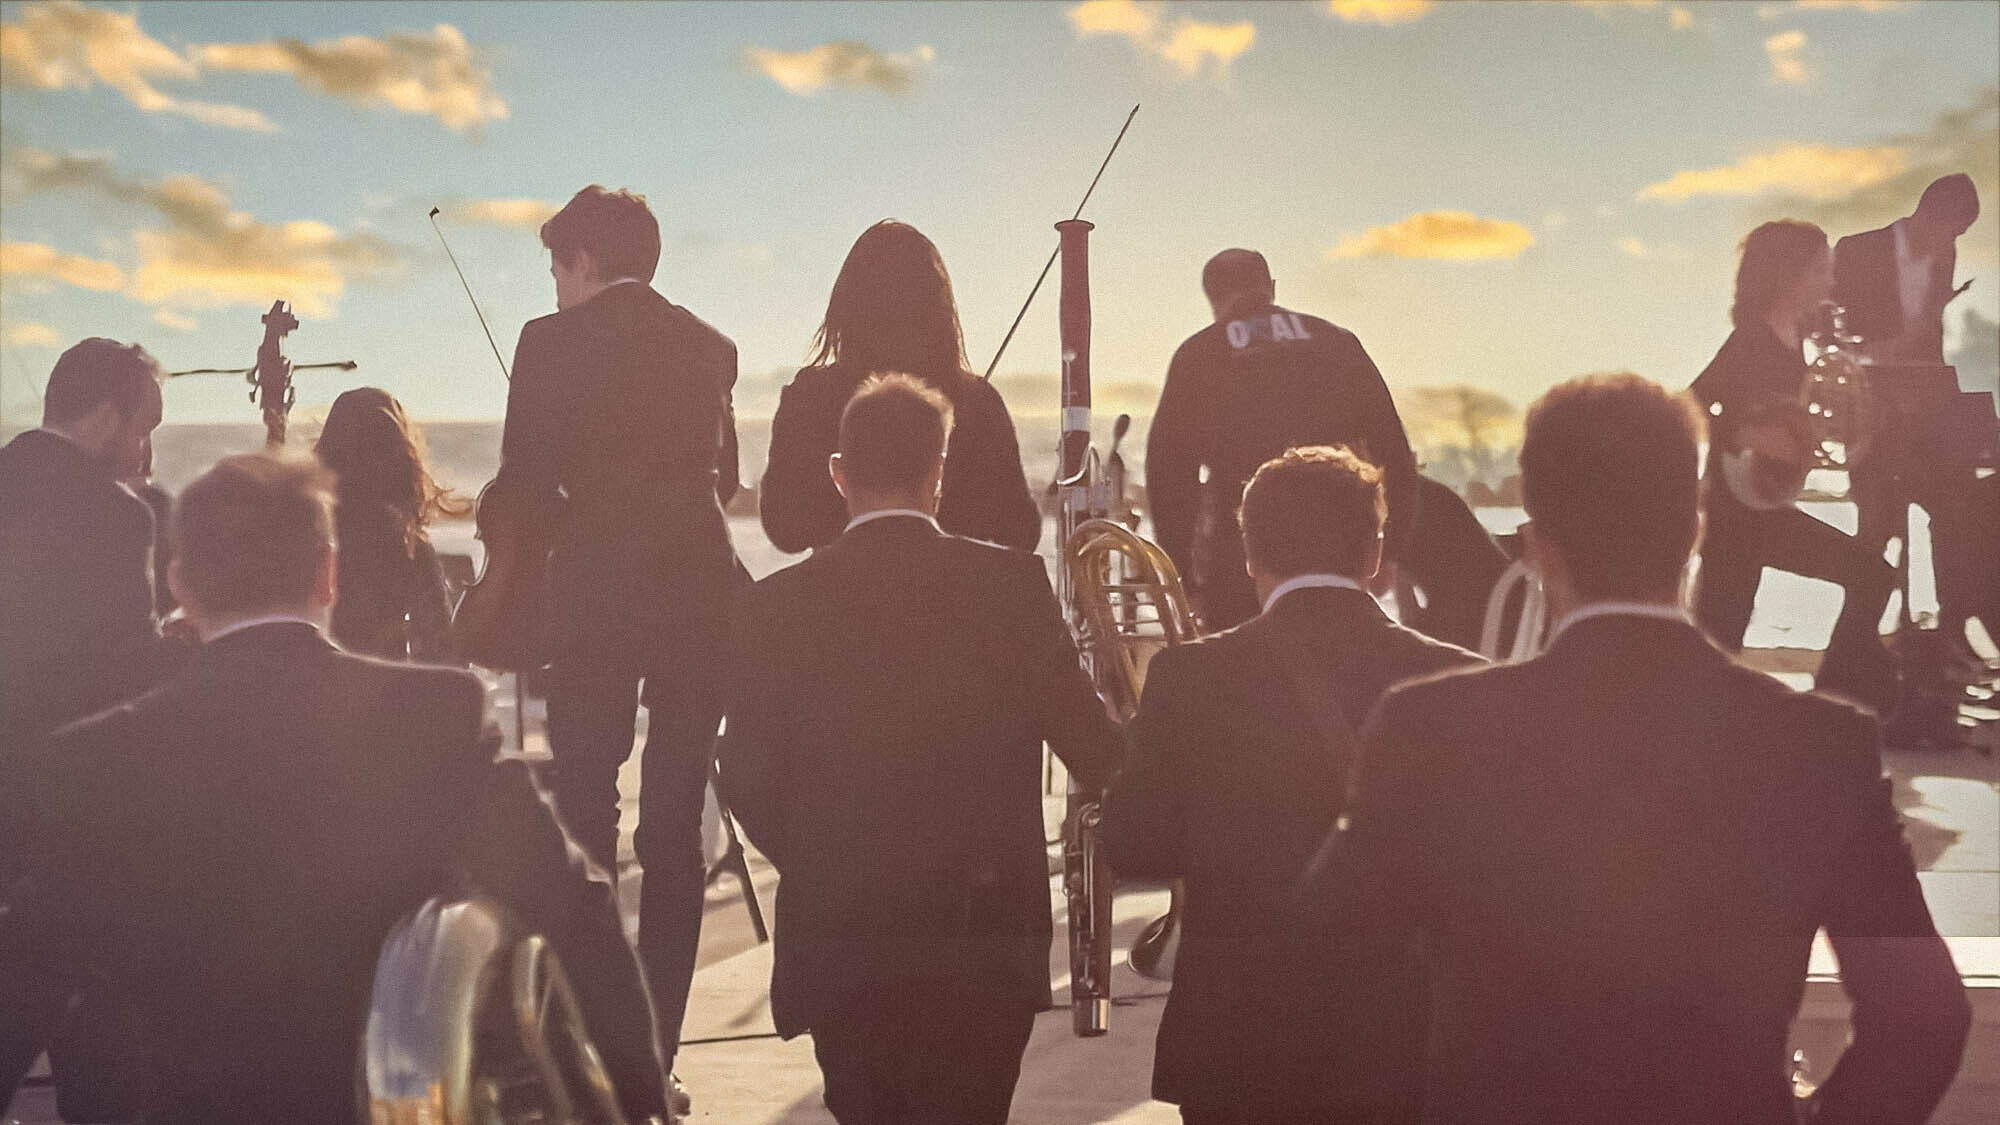 Orchestra's dream to play on the beach comes true in this global social media campaign